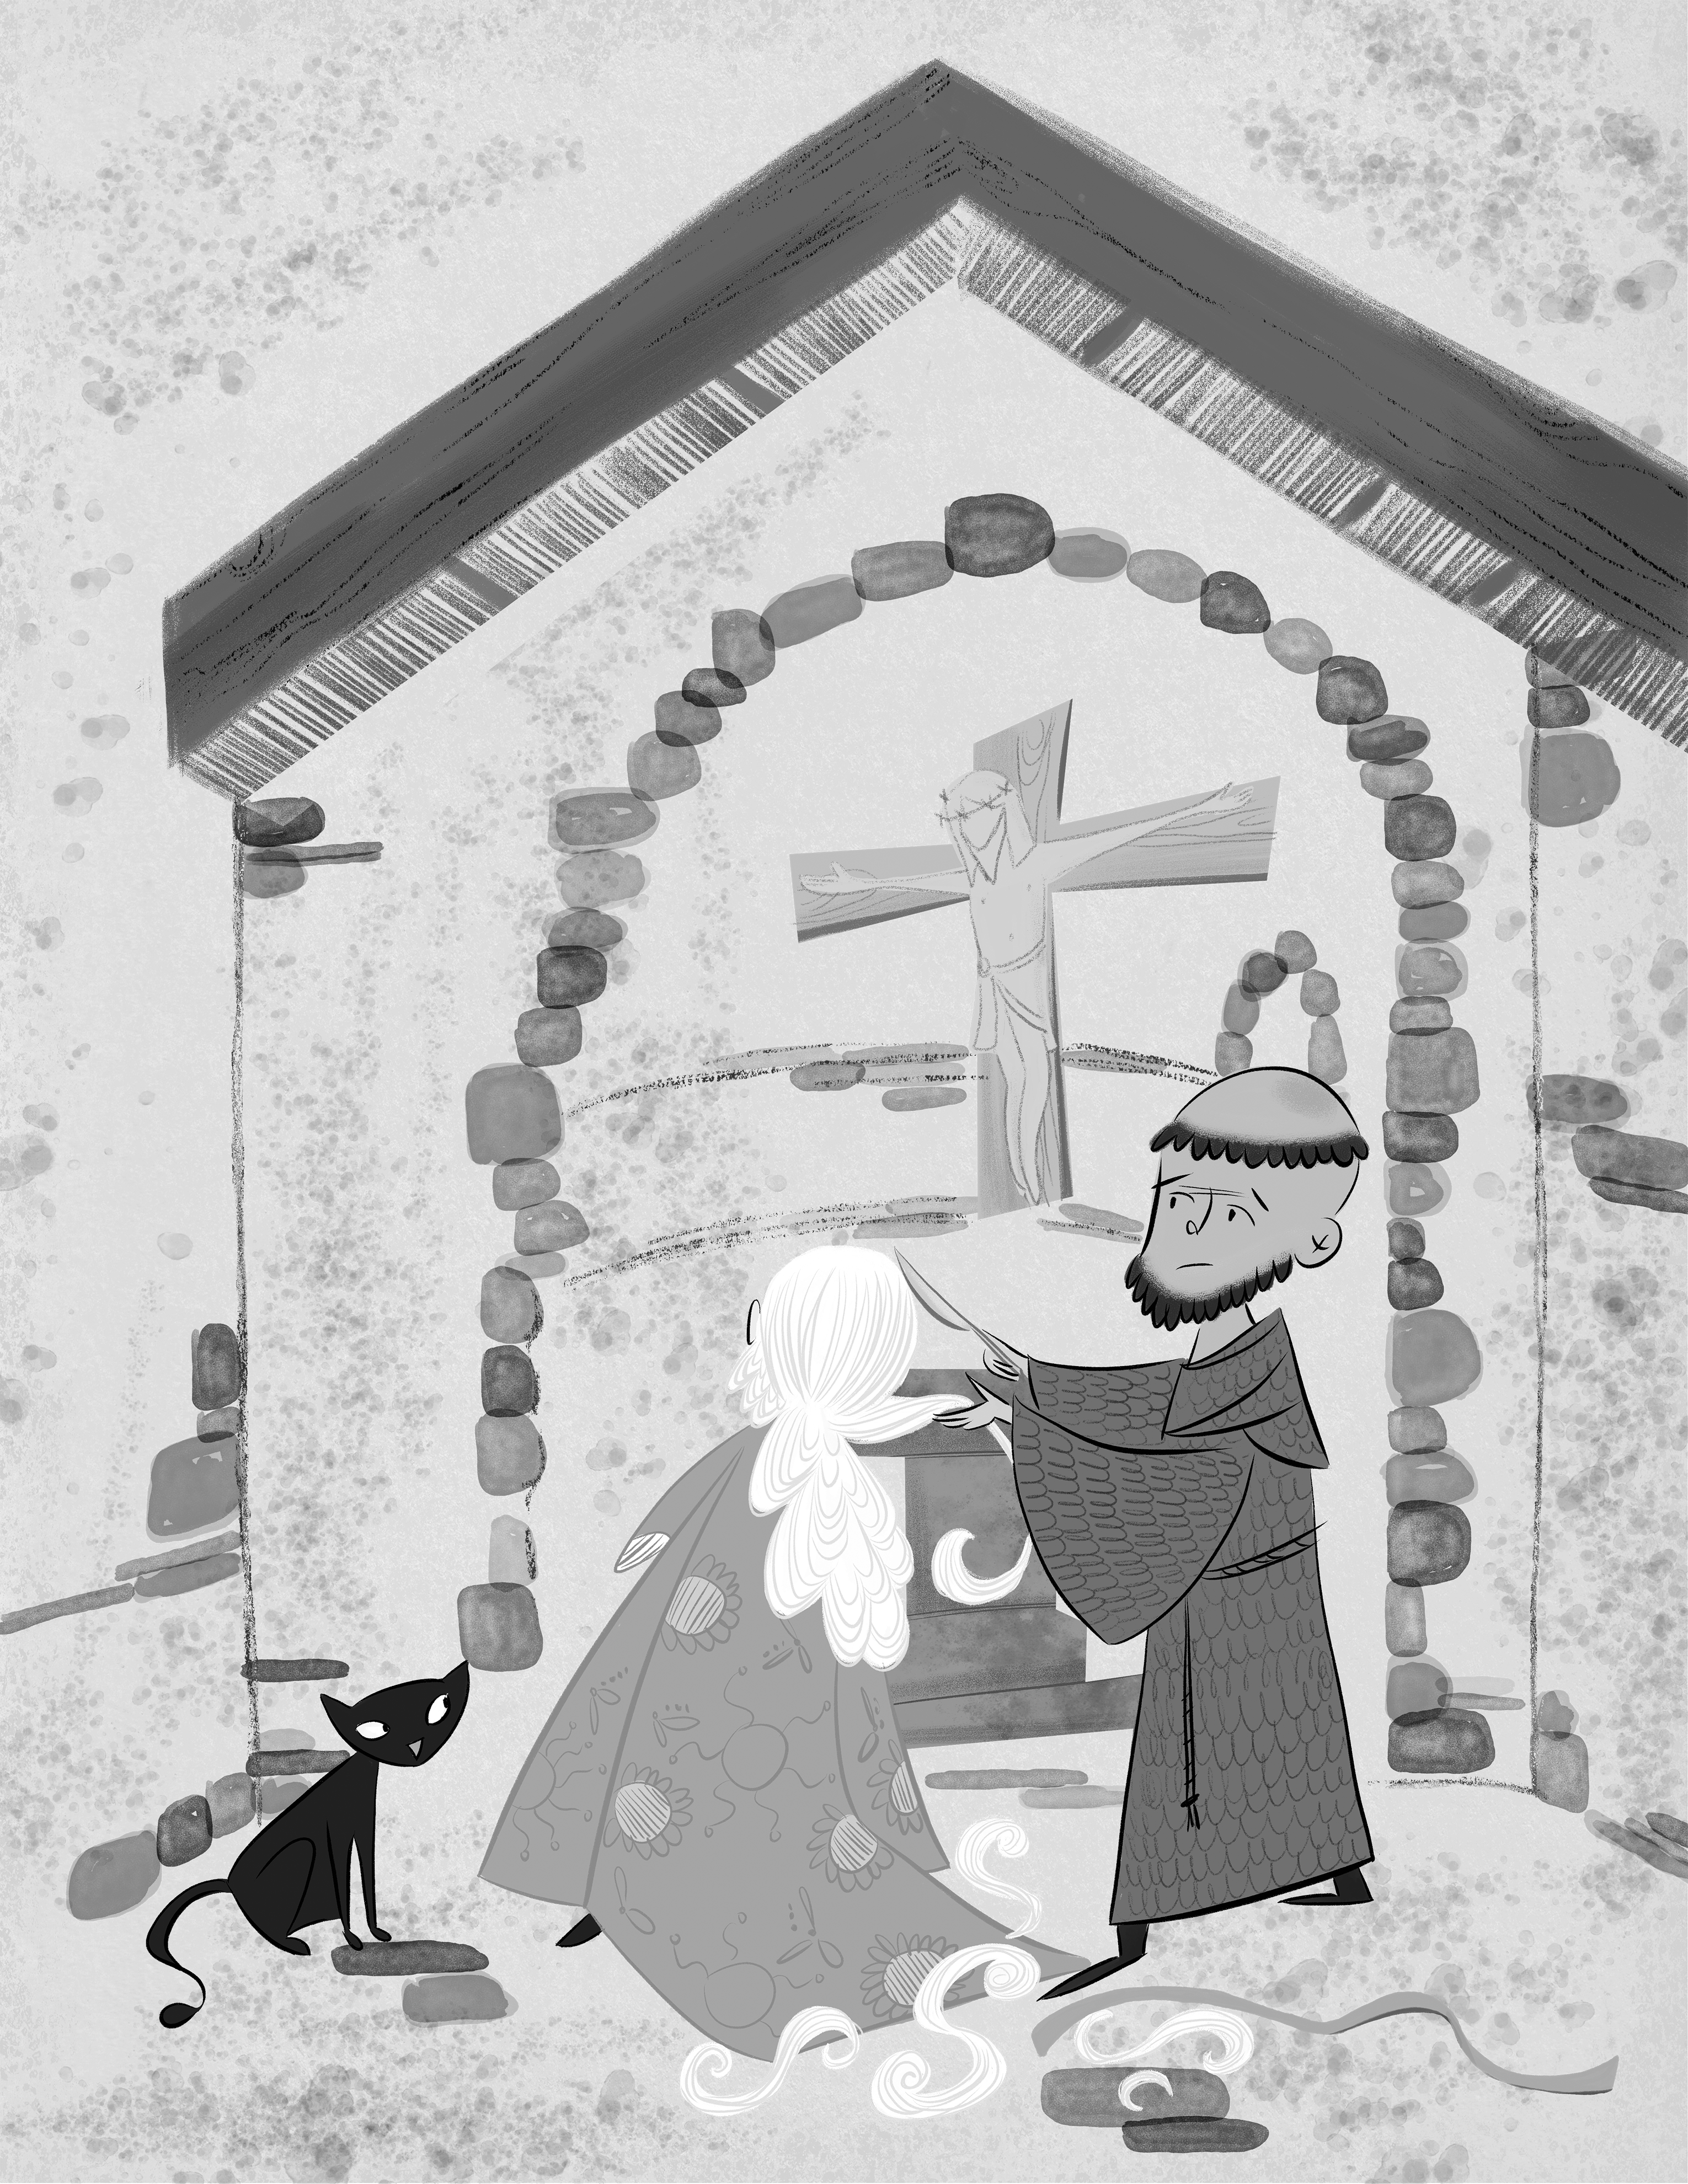 Brother Francis cuts off Clare's hair. Illustration by Jenn Bower.